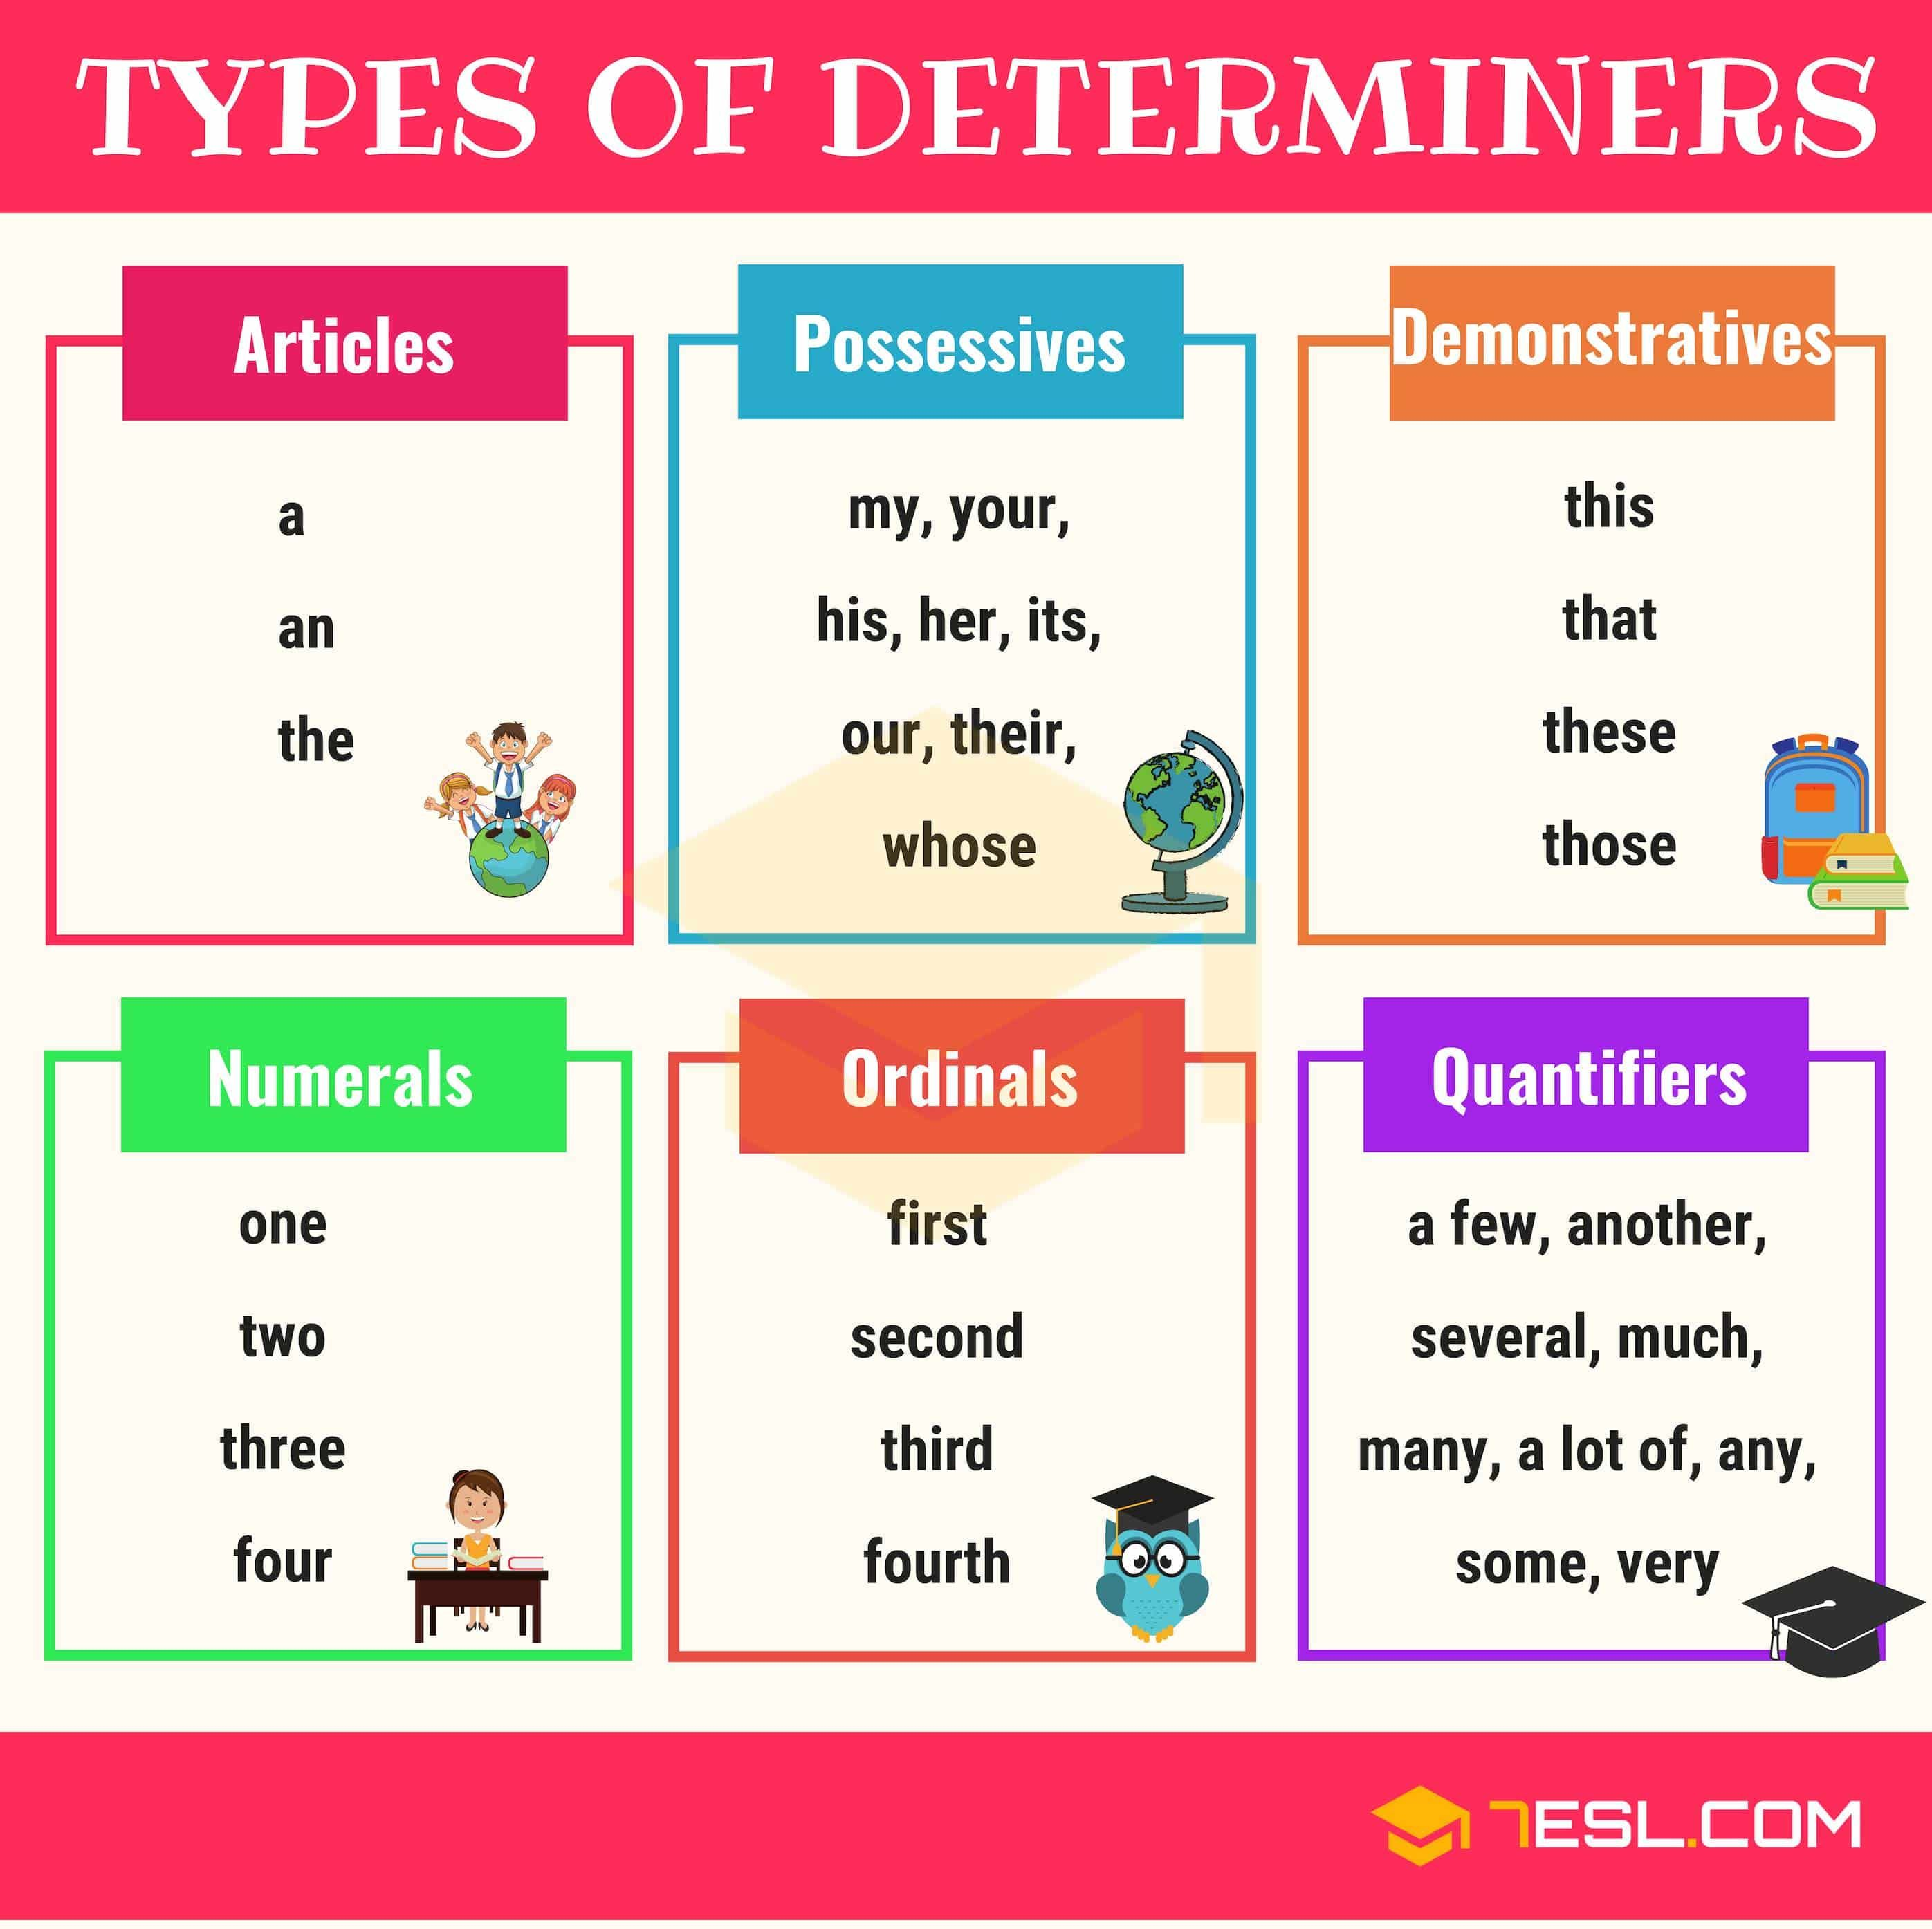 Determiner Definition Types List And Useful Examples Of